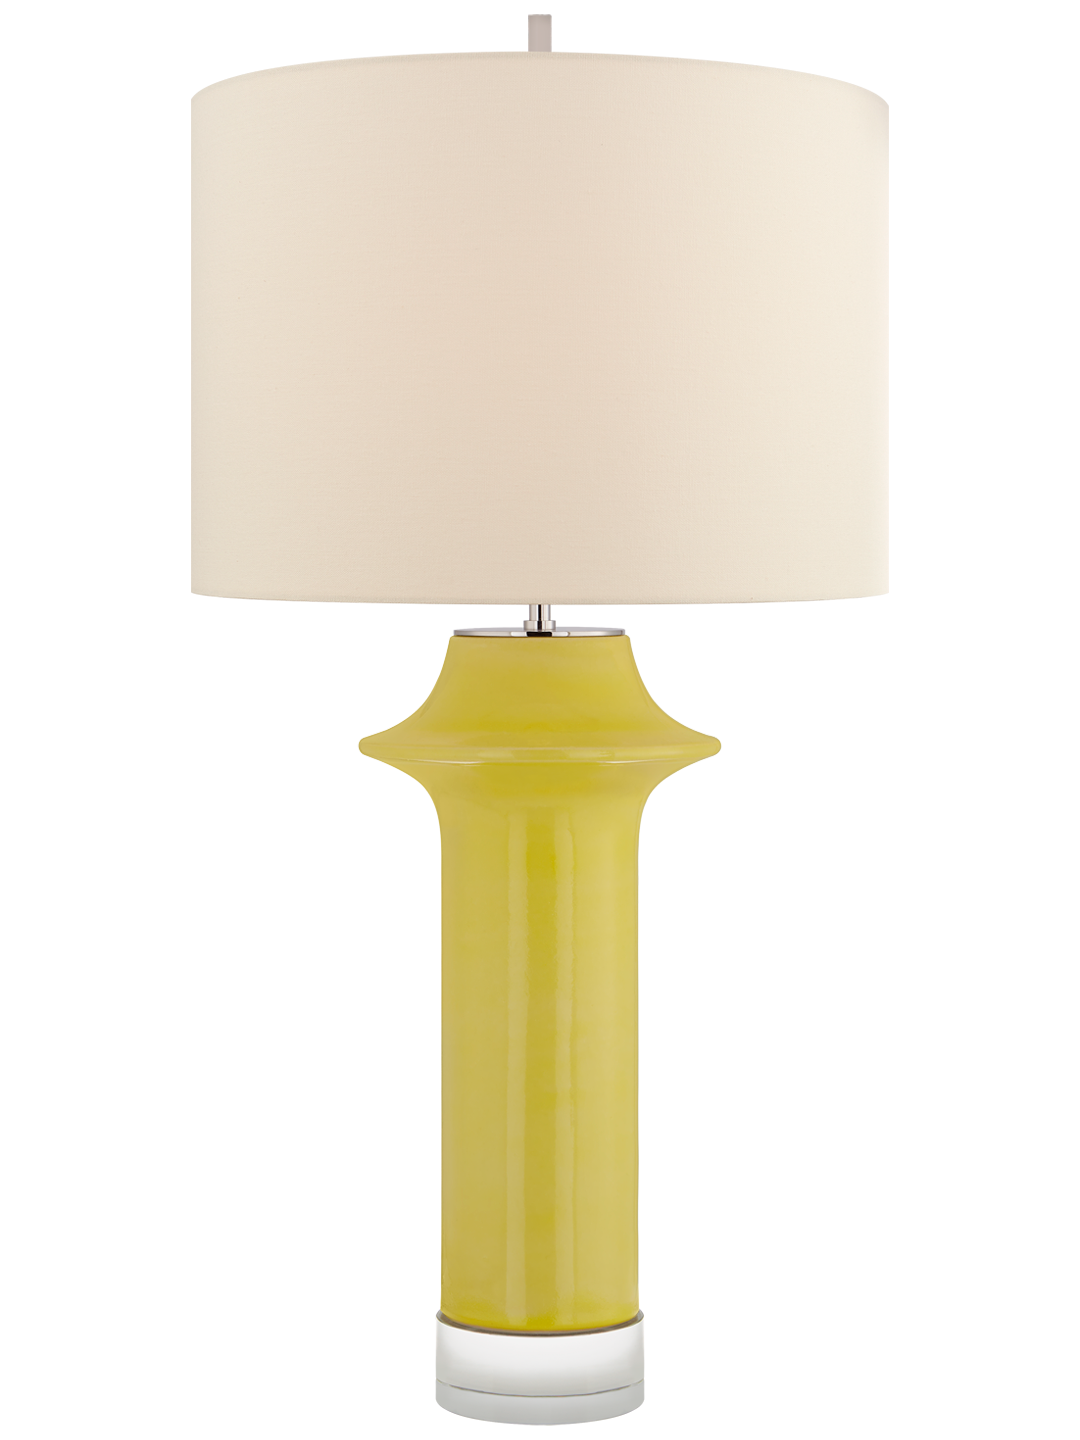 Giry Large Peaked Table Lamp In 2020 Table Lamp Lamp Table